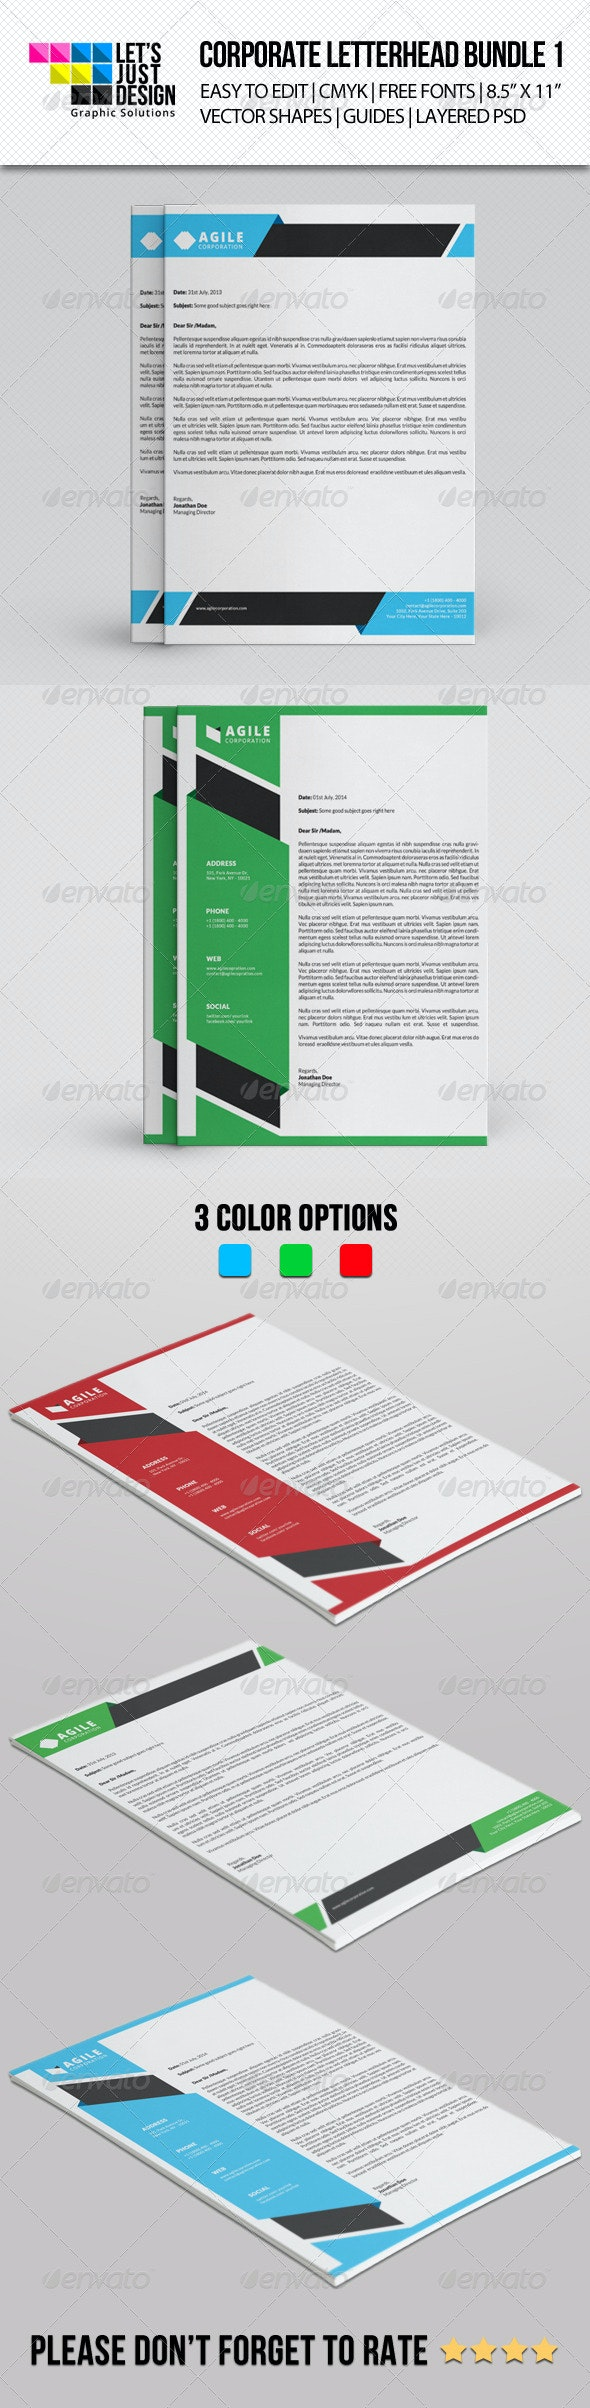 Corporate Letterhead Bundle Vol 1 - Stationery Print Templates